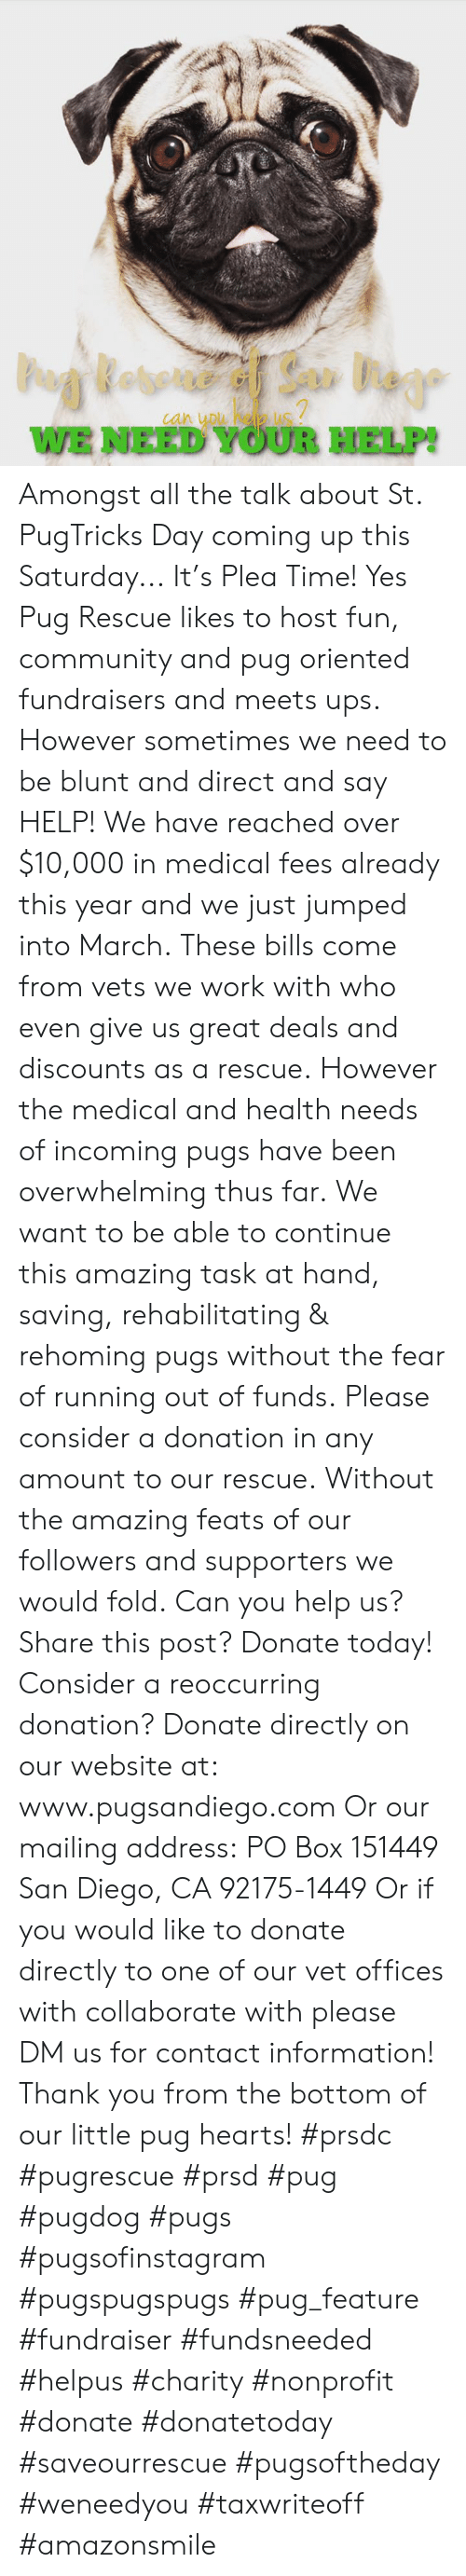 Community, Memes, and Ups: WE NEED YOUR HELP! Amongst all the talk about St. PugTricks Day coming up this Saturday...  It's Plea Time! Yes Pug Rescue likes to host fun, community and pug oriented fundraisers and meets ups.   However sometimes we need to be blunt and direct and say HELP!   We have reached over $10,000 in medical fees already this year and we just jumped into March.  These bills come from vets we work with who even give us great deals and discounts as a rescue.  However the medical and health needs of incoming pugs have been overwhelming thus far.  We want to be able to continue this amazing task at hand, saving, rehabilitating & rehoming pugs without the fear of running out of funds.  Please consider a donation in any amount to our rescue.  Without the amazing feats of our followers and supporters we would fold.  Can you help us? Share this post? Donate today! Consider a reoccurring donation?   Donate directly on our website at: www.pugsandiego.com  Or our mailing address: PO Box 151449 San Diego, CA 92175-1449  Or if you would like to donate directly to one of our vet offices with collaborate with please DM us for contact information!  Thank you from the bottom of our little pug hearts!  #prsdc #pugrescue #prsd #pug #pugdog #pugs #pugsofinstagram #pugspugspugs #pug_feature #fundraiser #fundsneeded #helpus #charity #nonprofit #donate #donatetoday #saveourrescue #pugsoftheday #weneedyou #taxwriteoff #amazonsmile